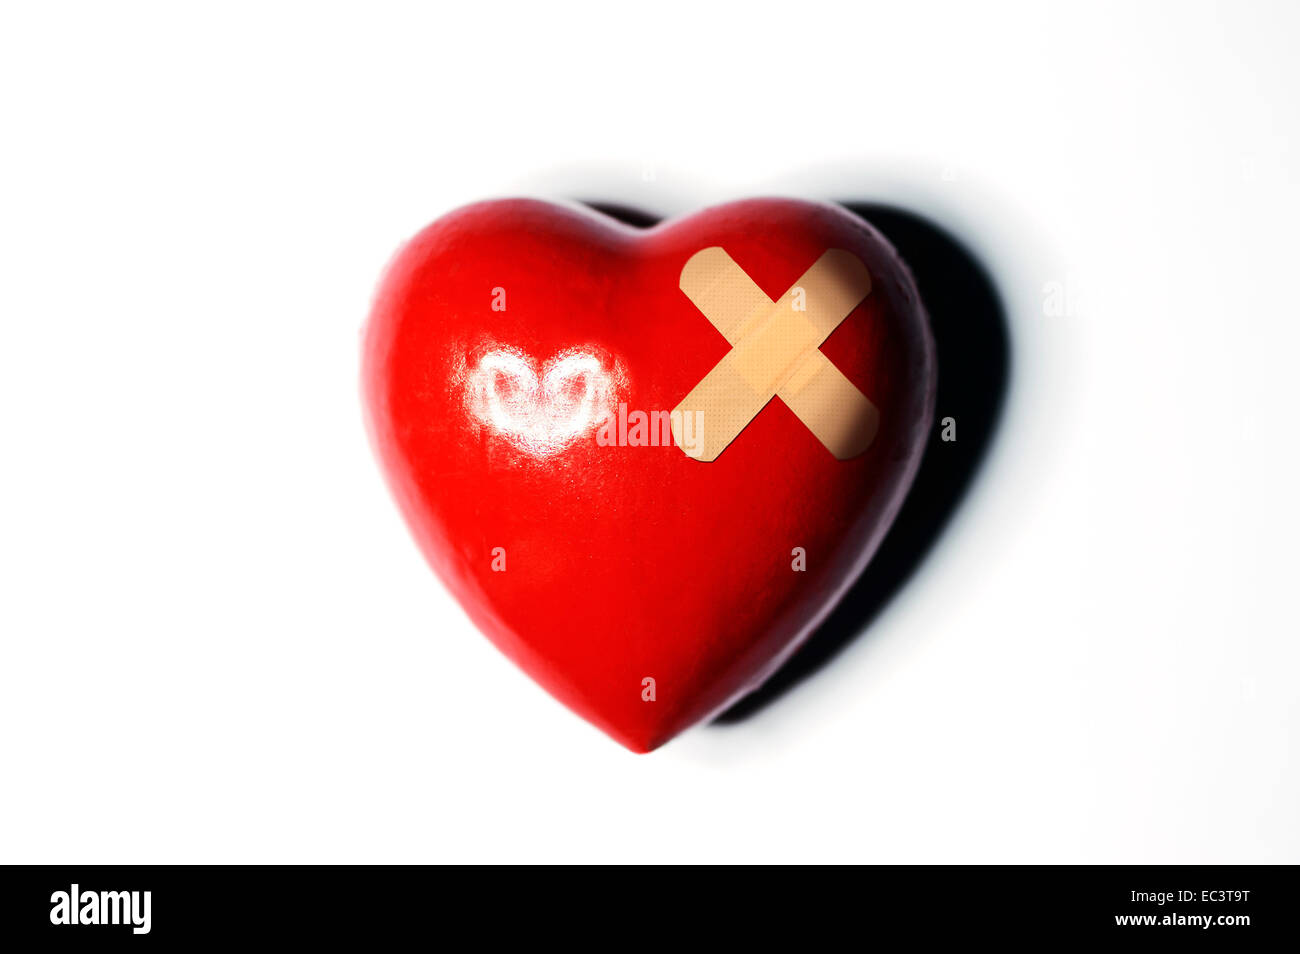 Red heart with band-aid - Stock Image